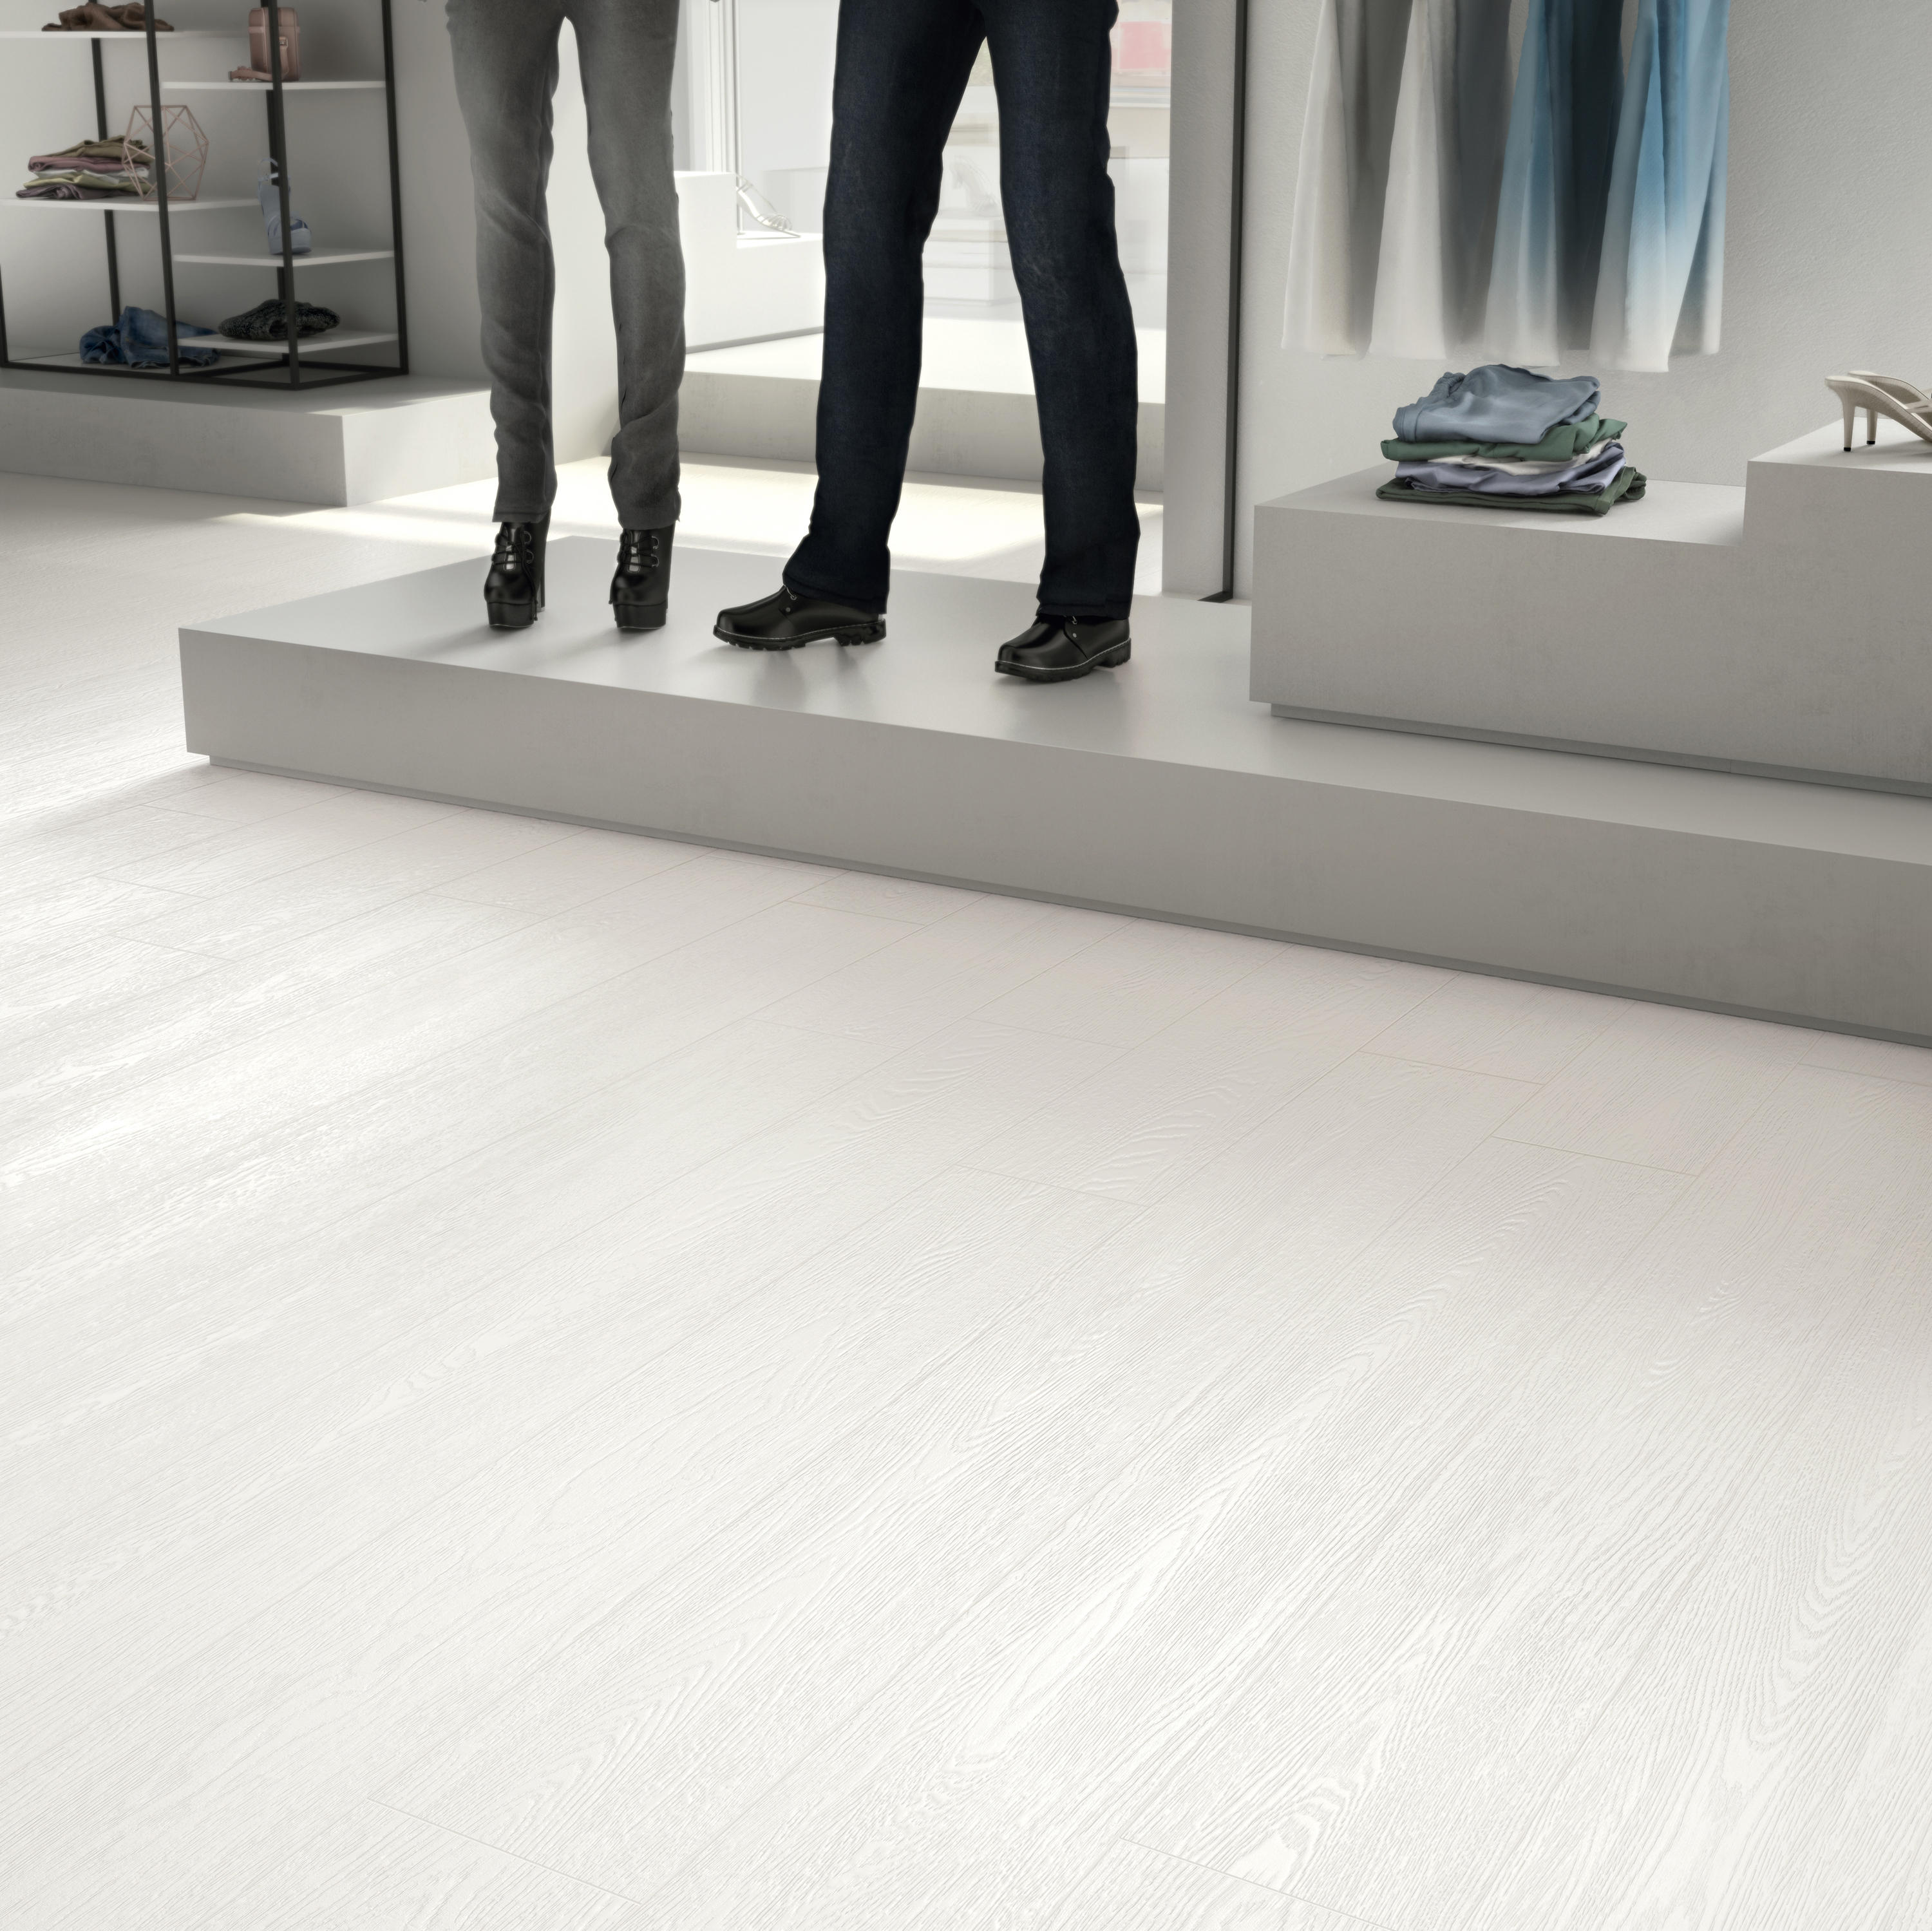 Backstage Beige Brush Ceramic Tiles From Cotto D Este Architonic